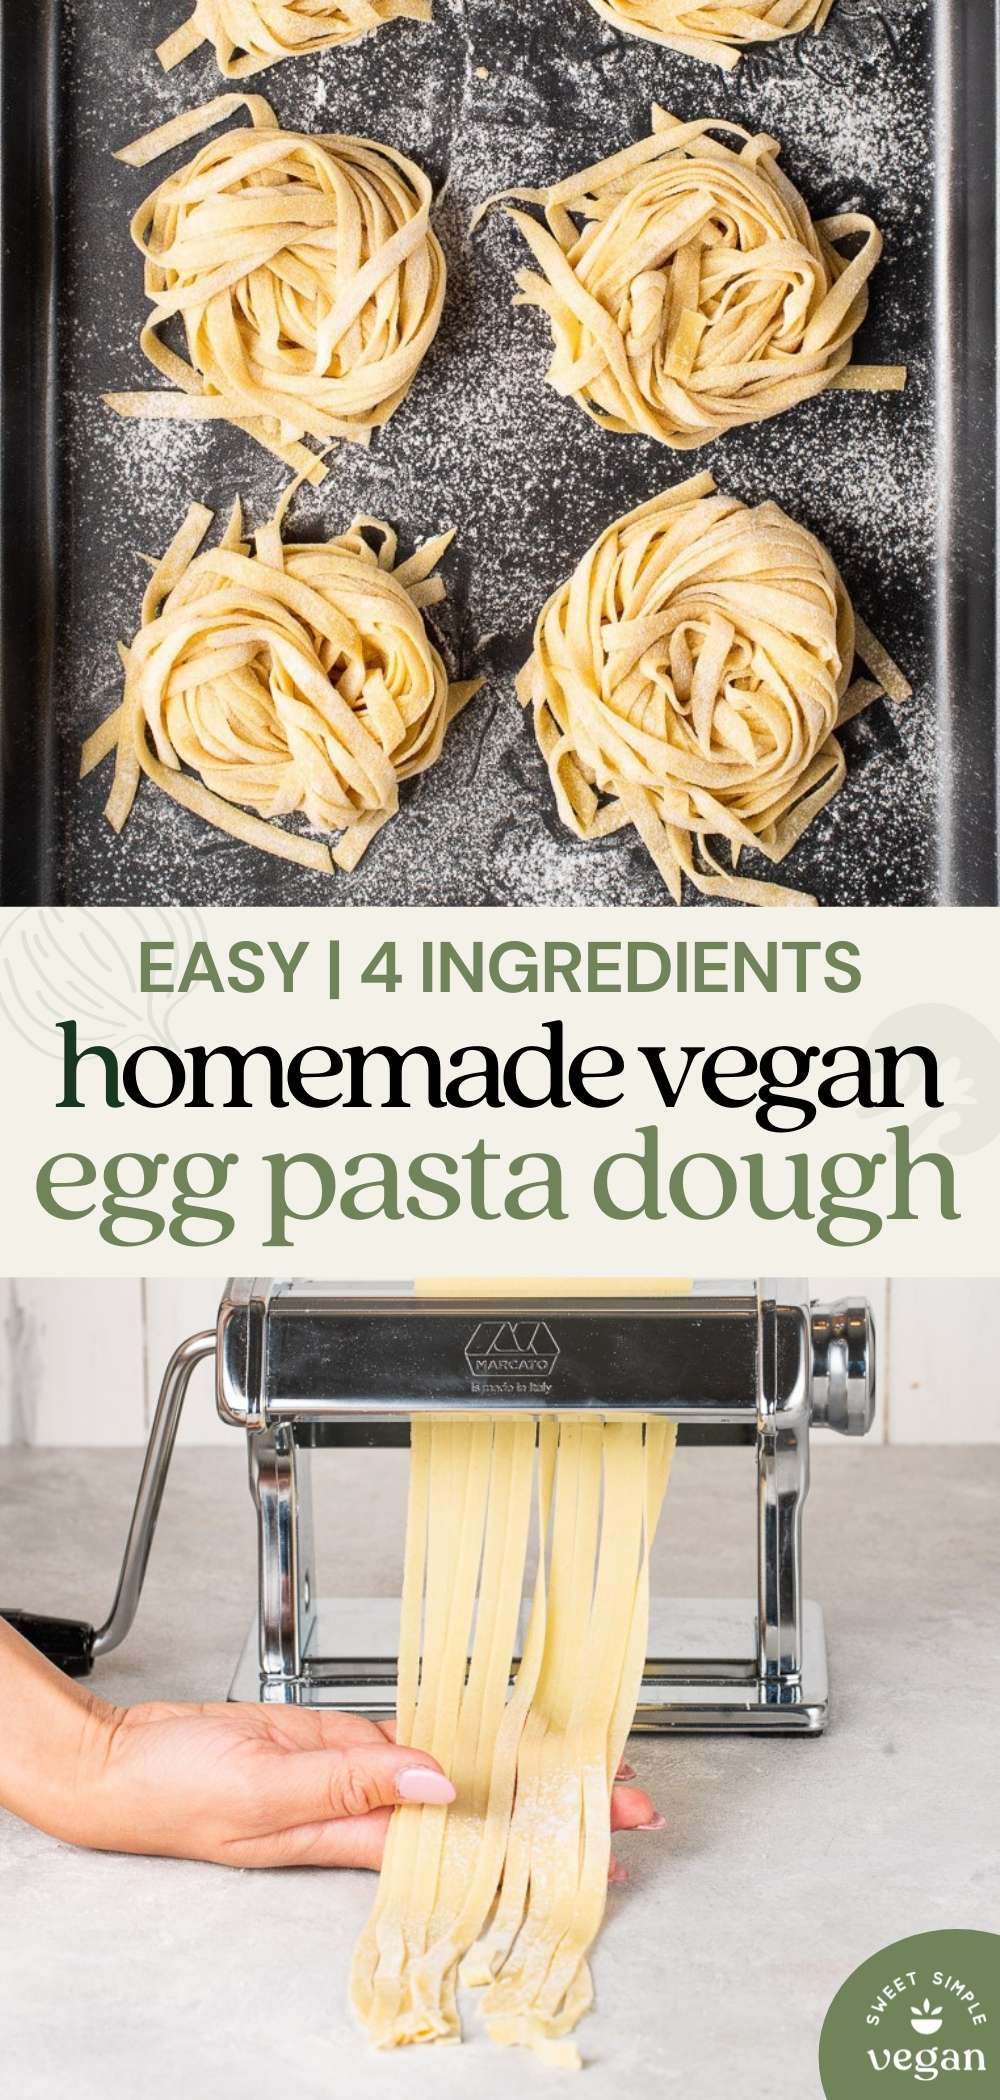 two pasta images with text for pinterest